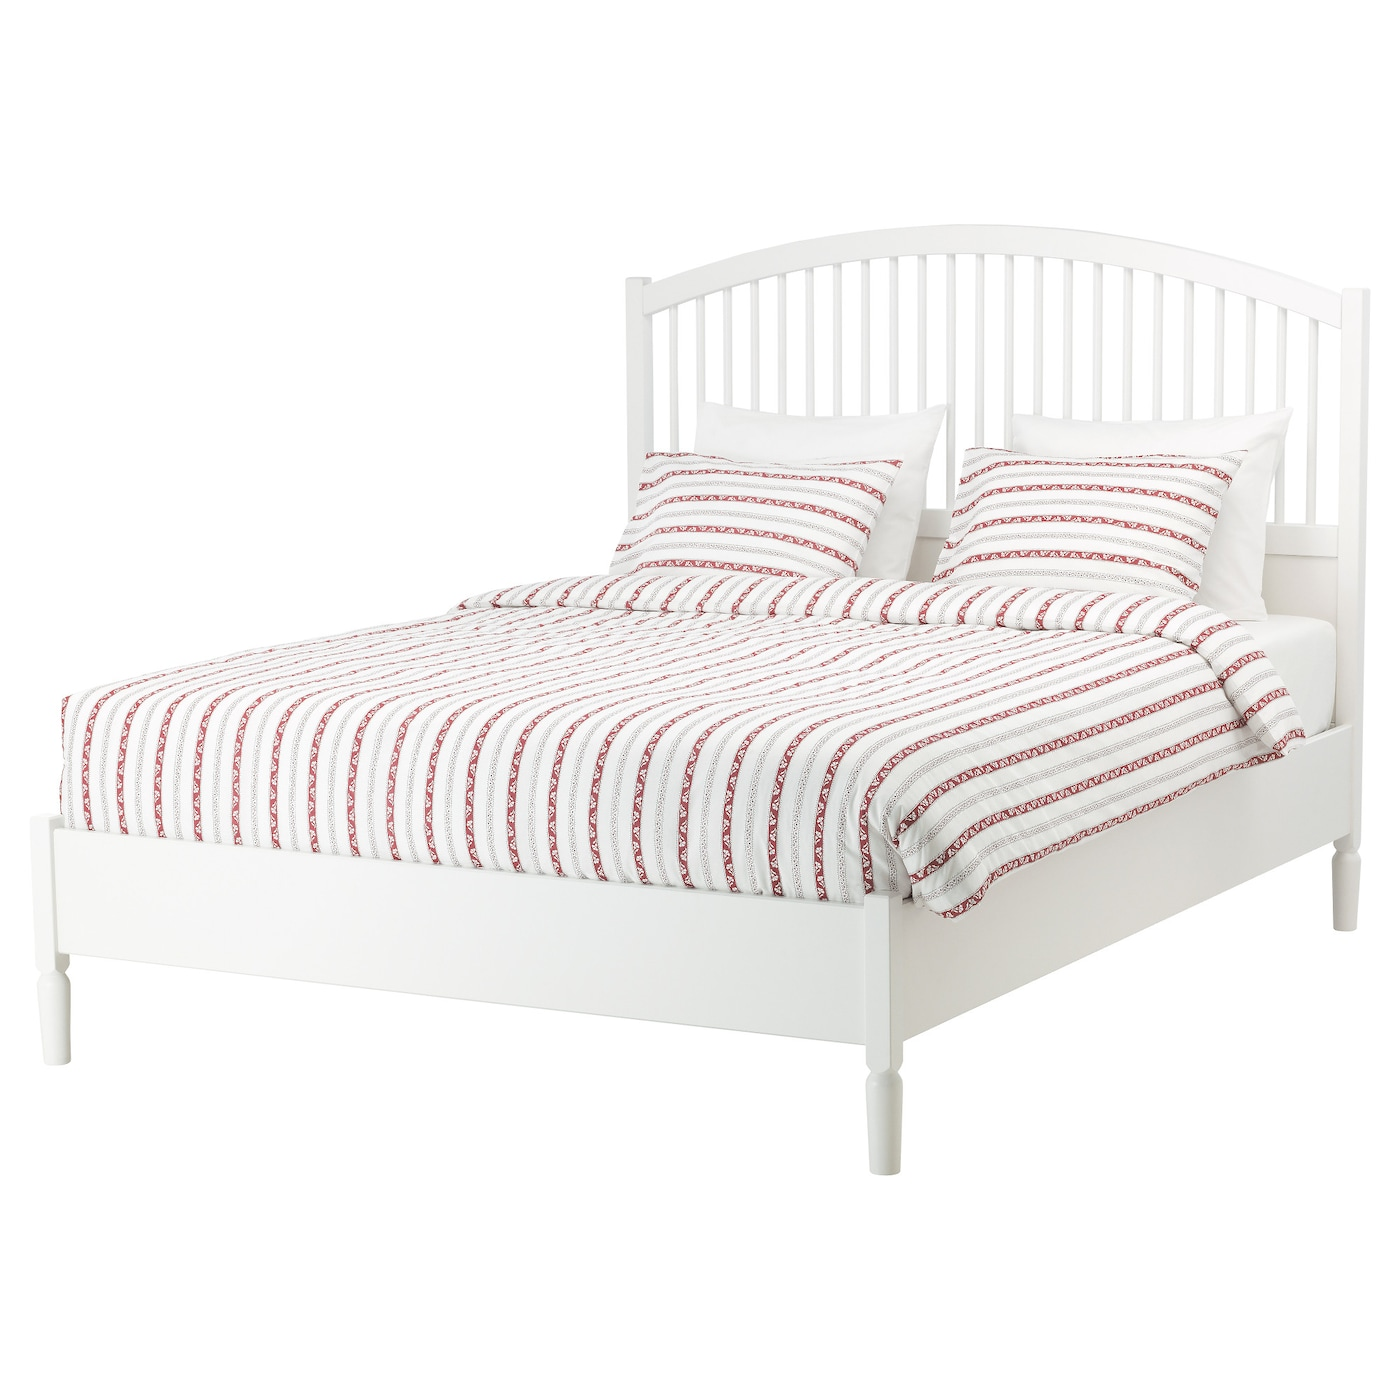 ikea king size beds tyssedal bed frame white leirsund standard king ikea 15613